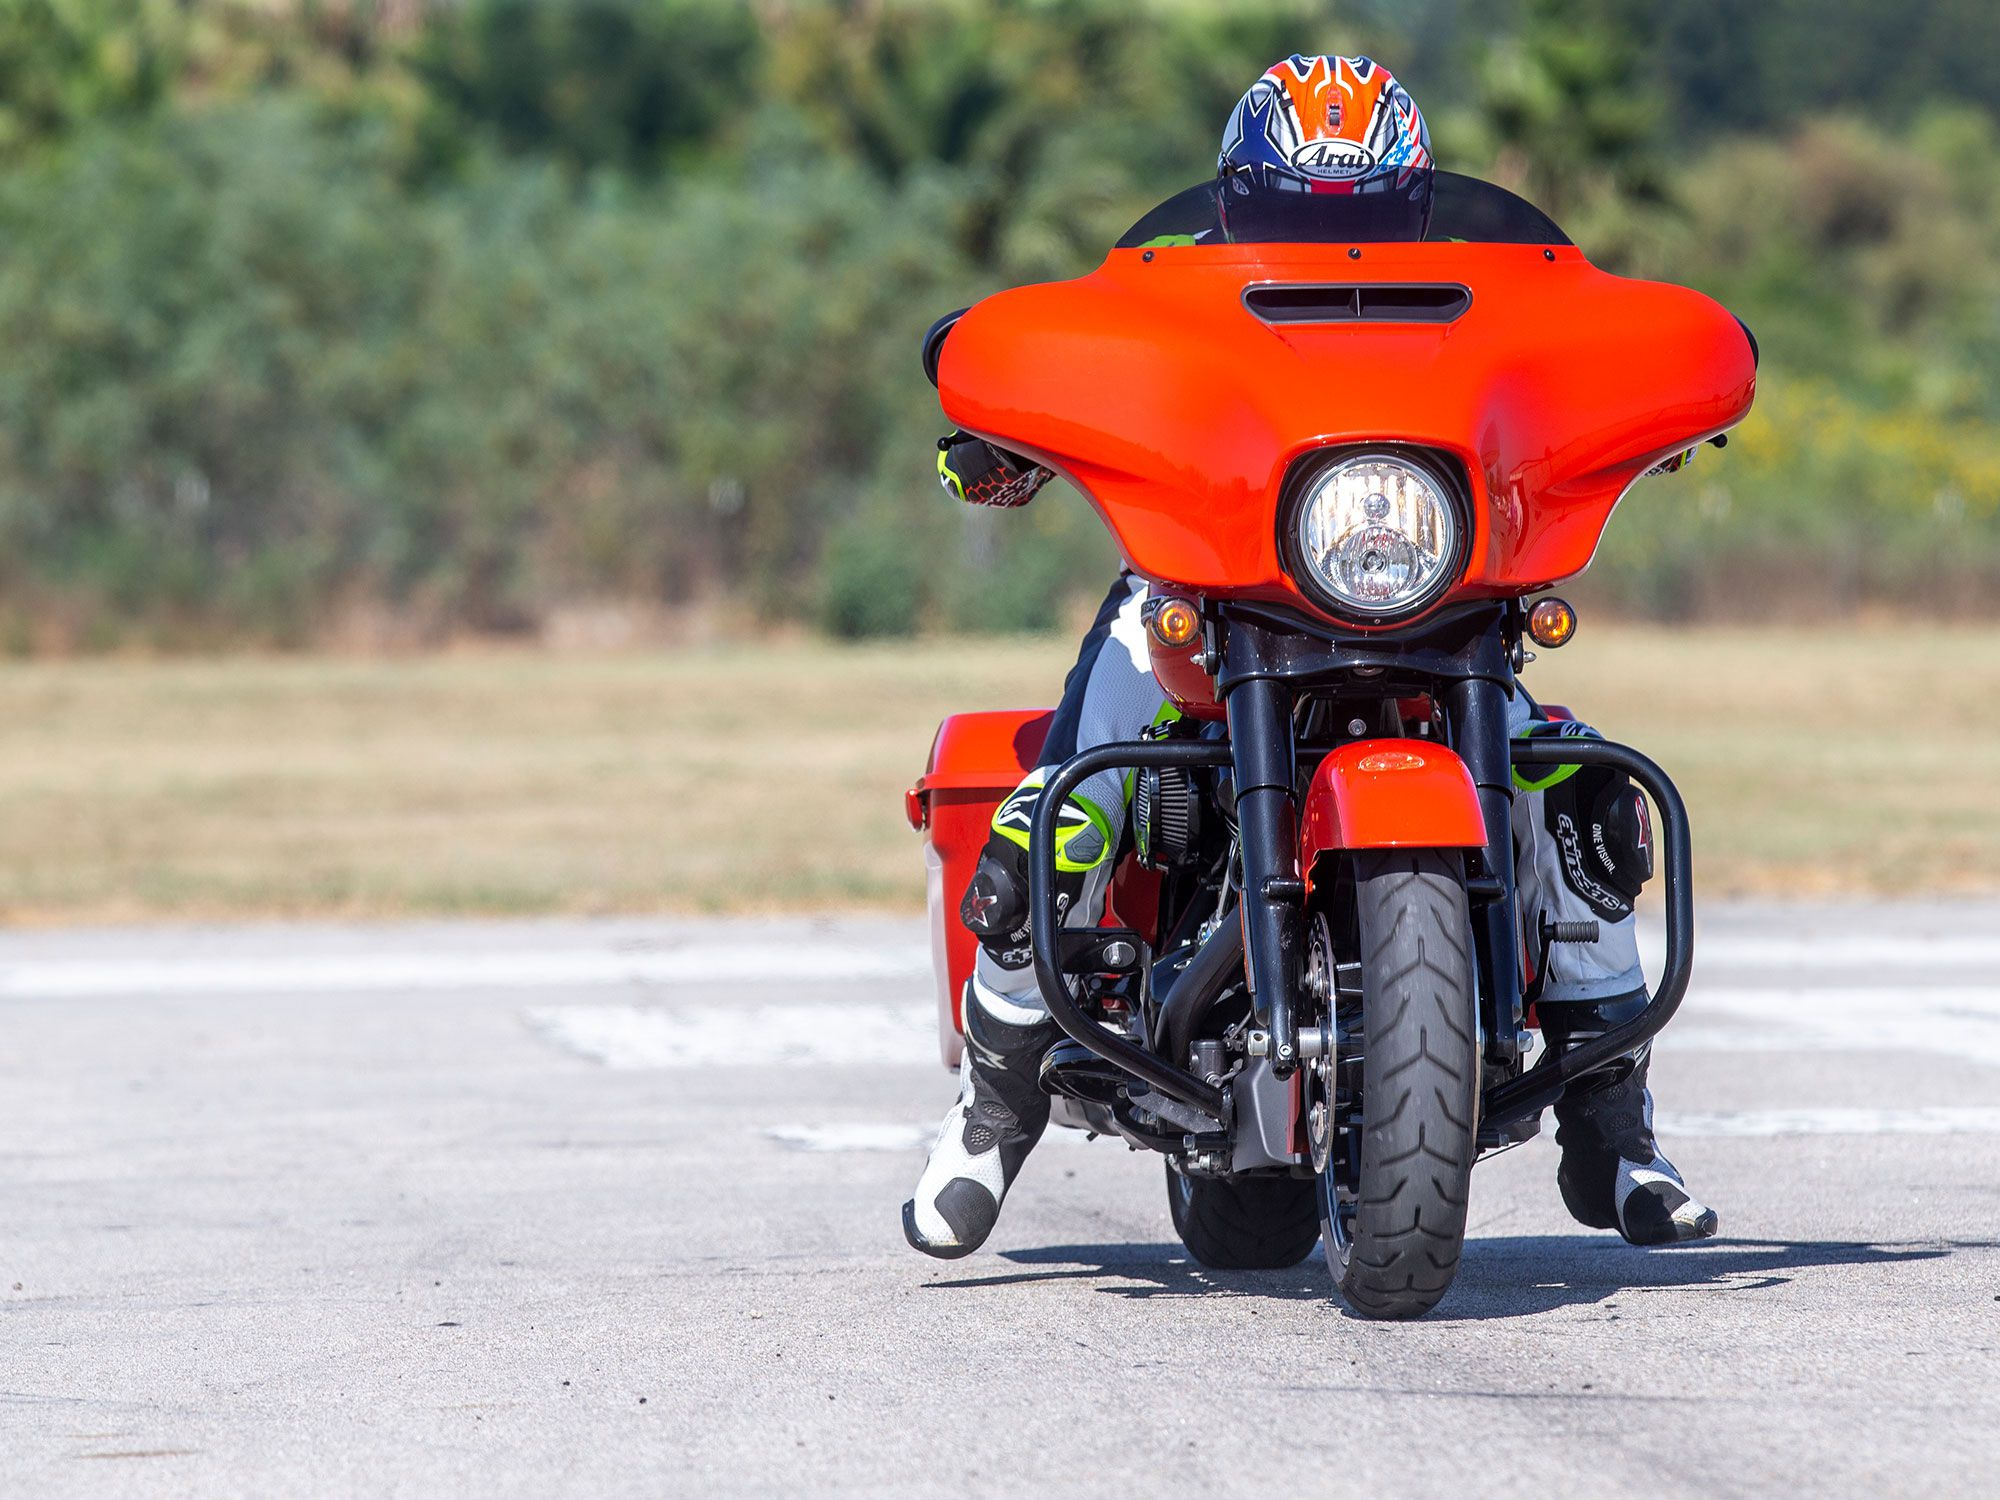 We took the 114-equipped Street Glide to our testing grounds to get base numbers in acceleration and brake testing.